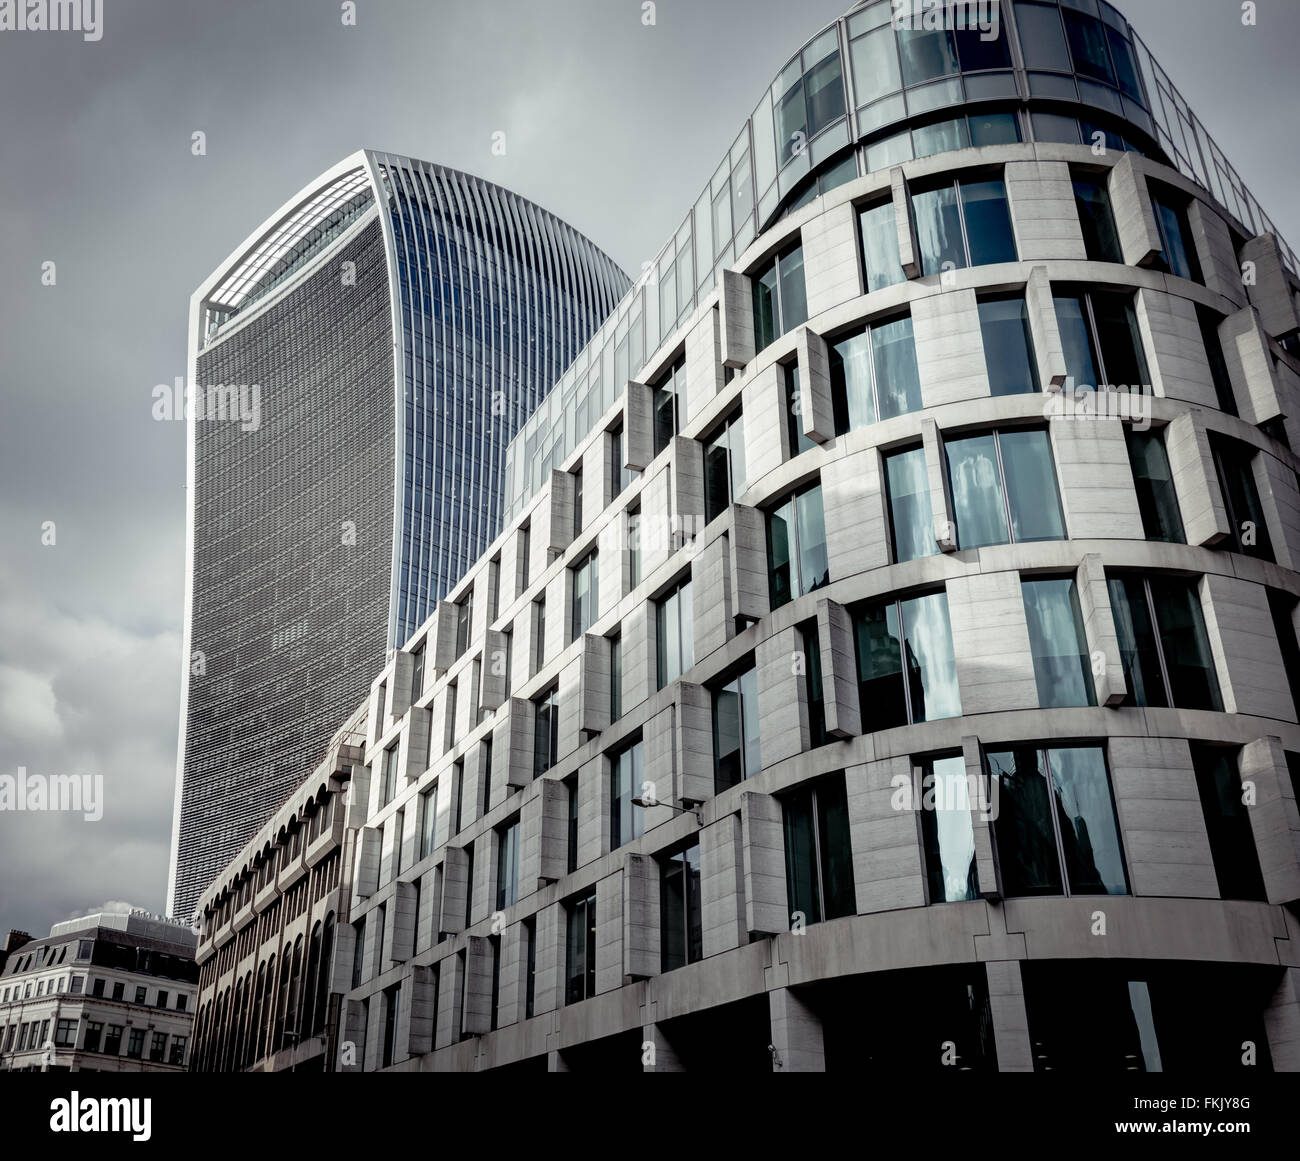 Modern London architecture featuring the Plantation Place South (60 Great Tower Street) and 20 Fenchurch St (Walkie - Stock Image